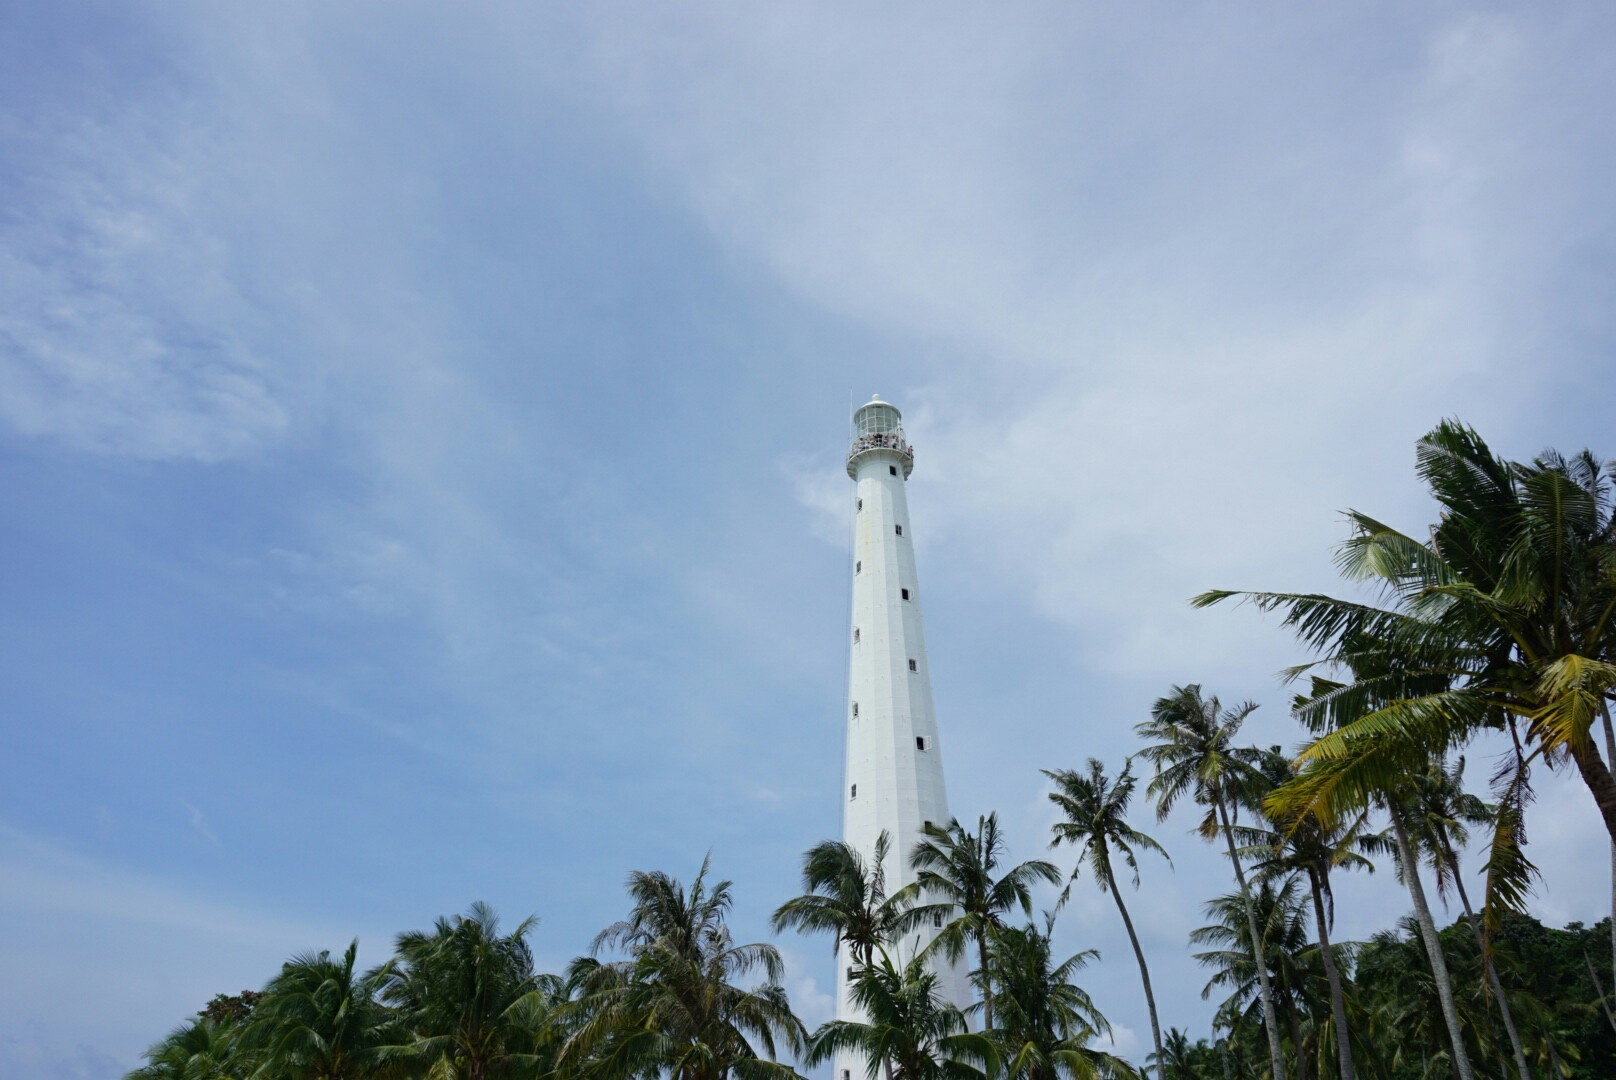 KANO Travel & Trip to Belitung | Indonesia